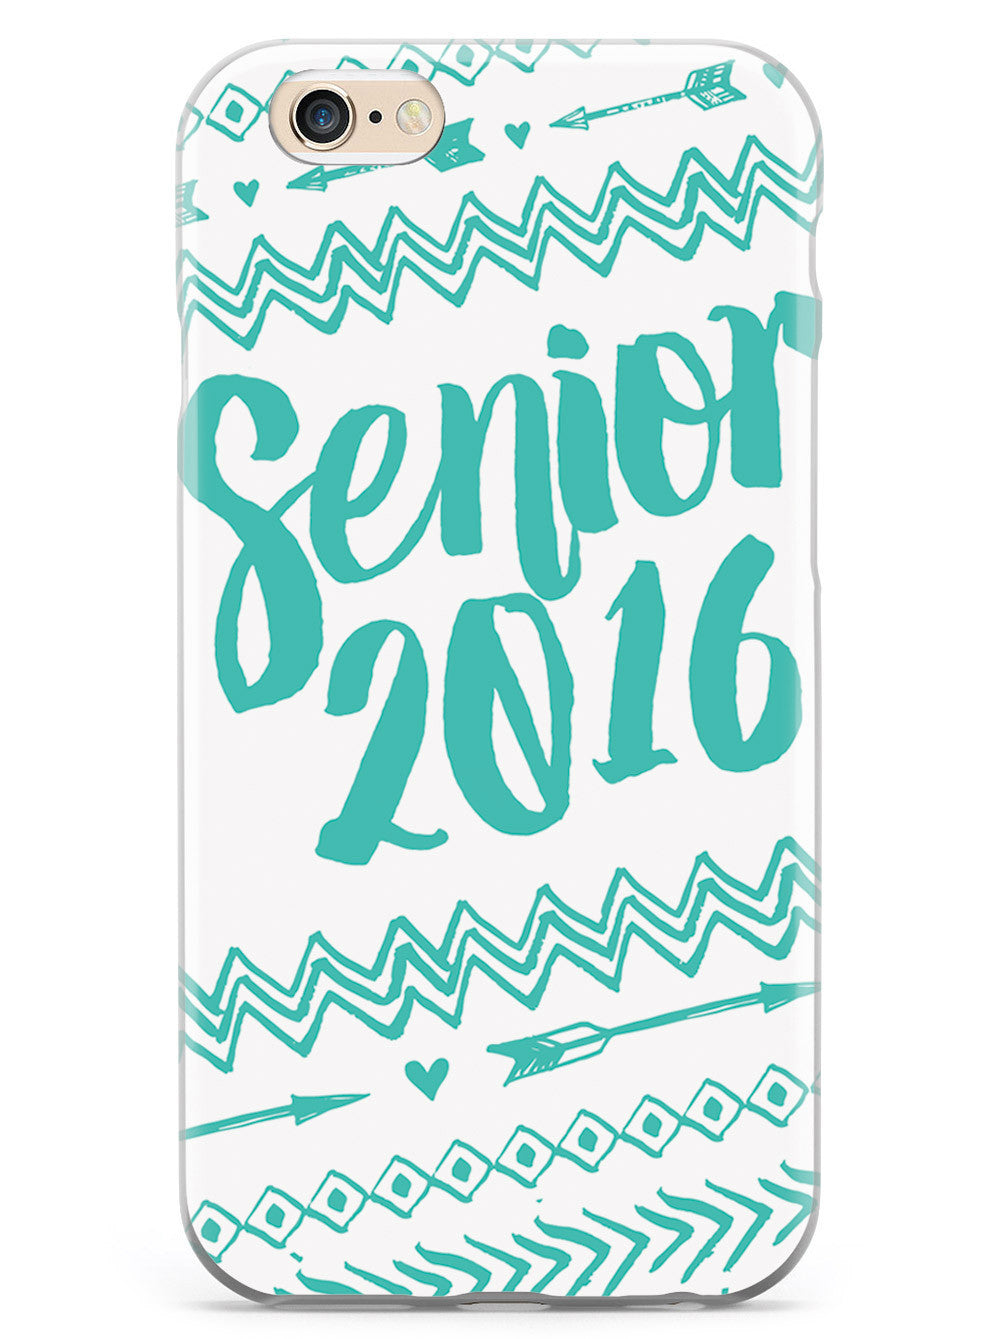 Senior 2016 - Teal Case